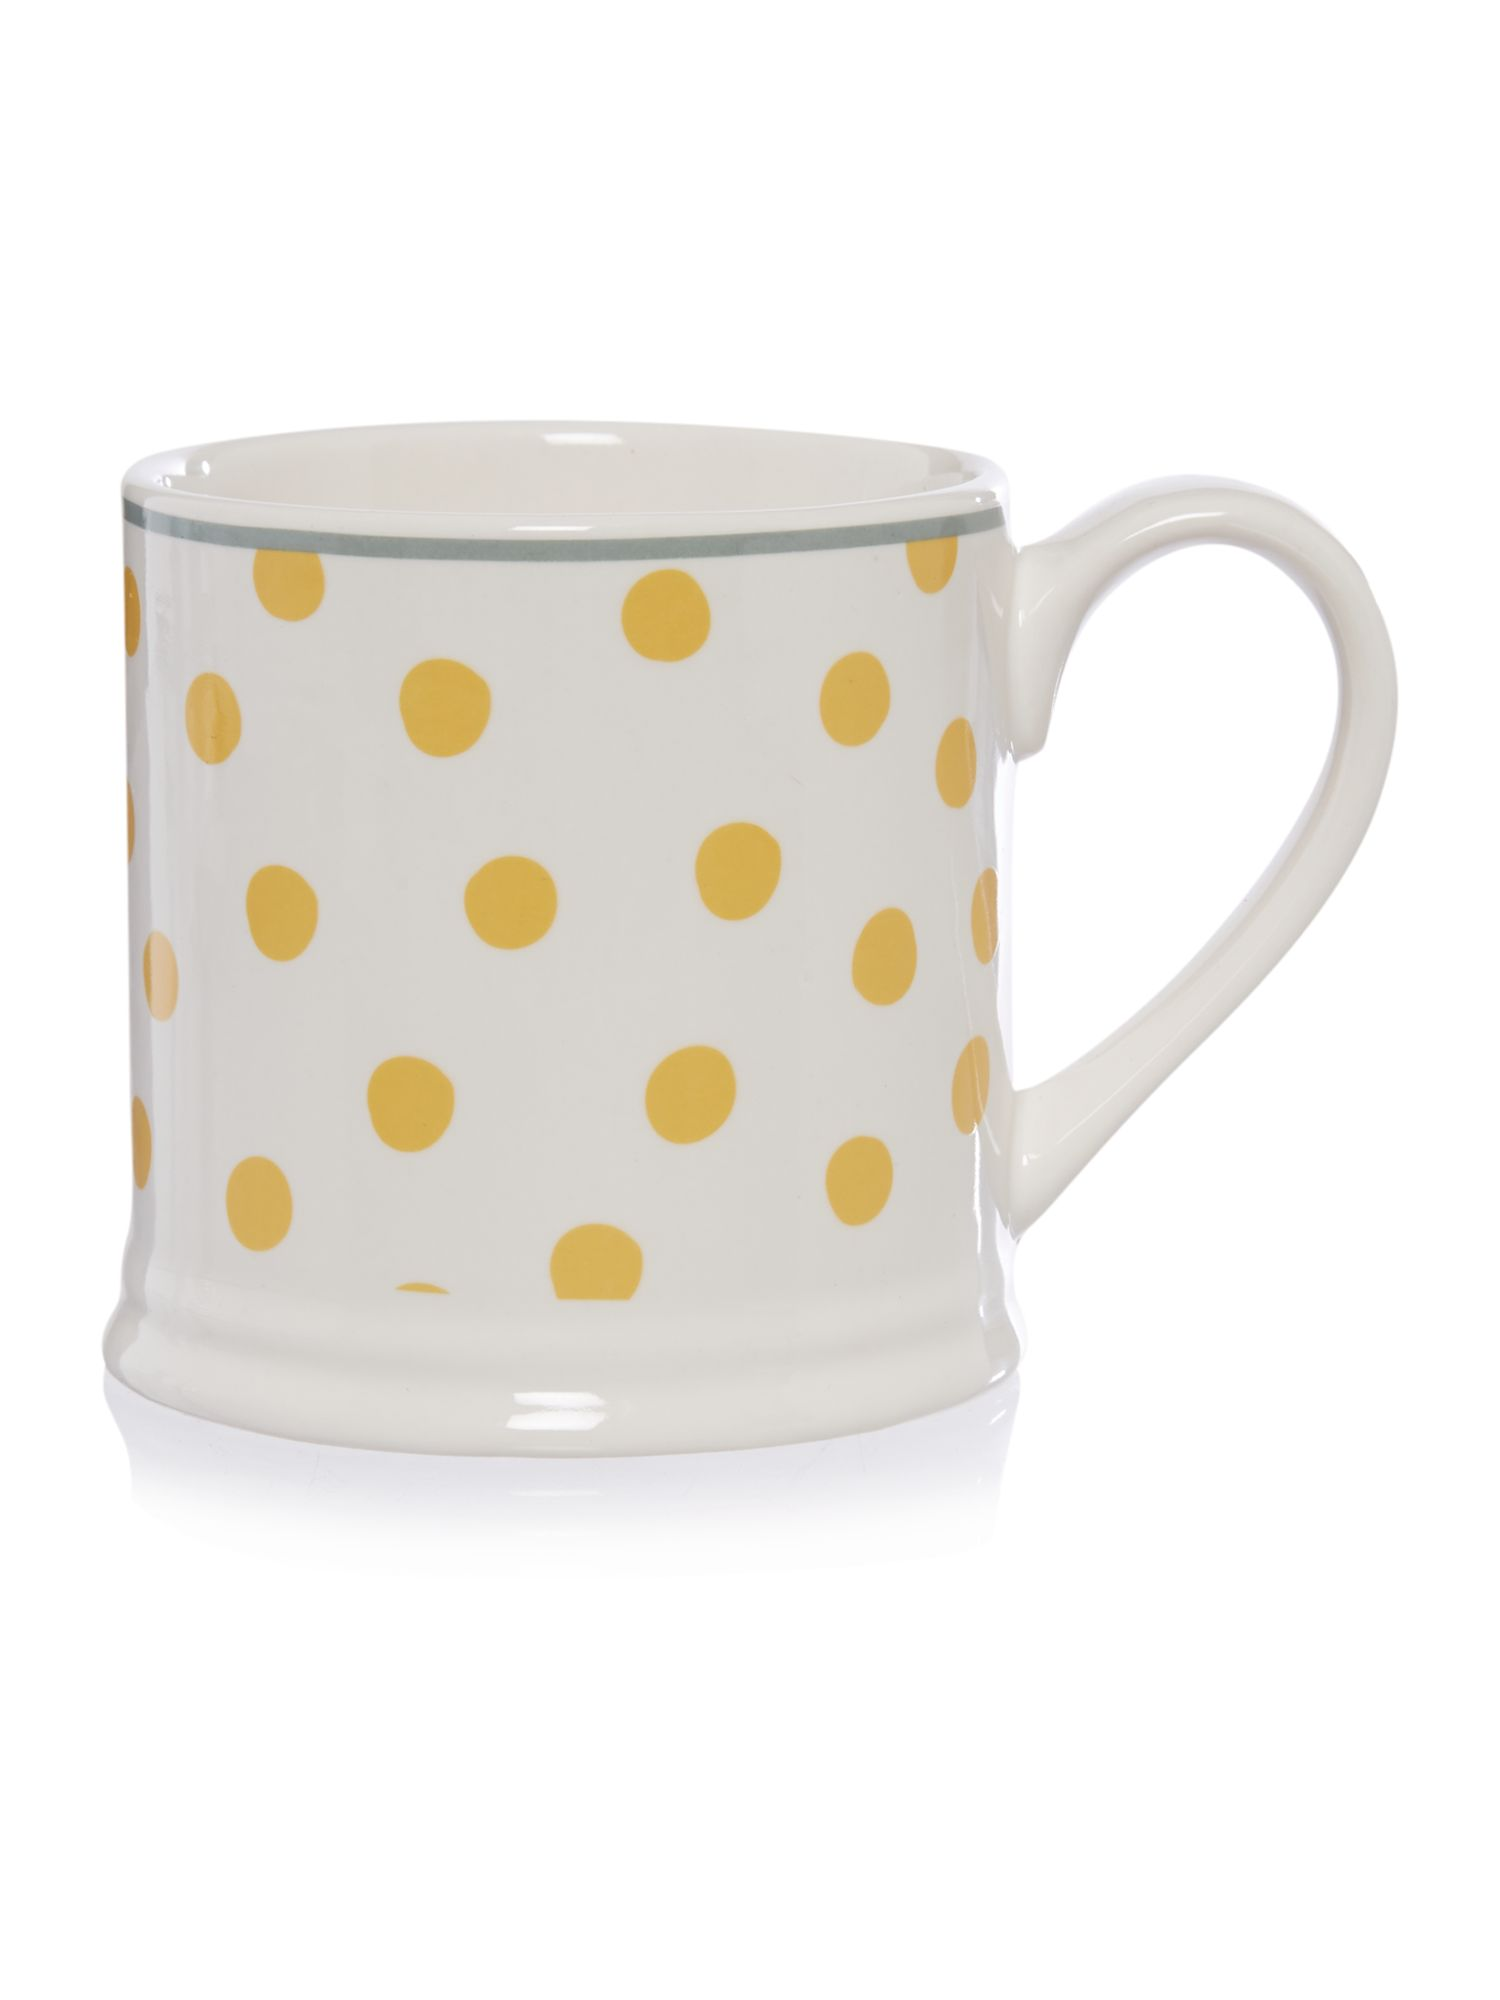 Yellow polka dot mug